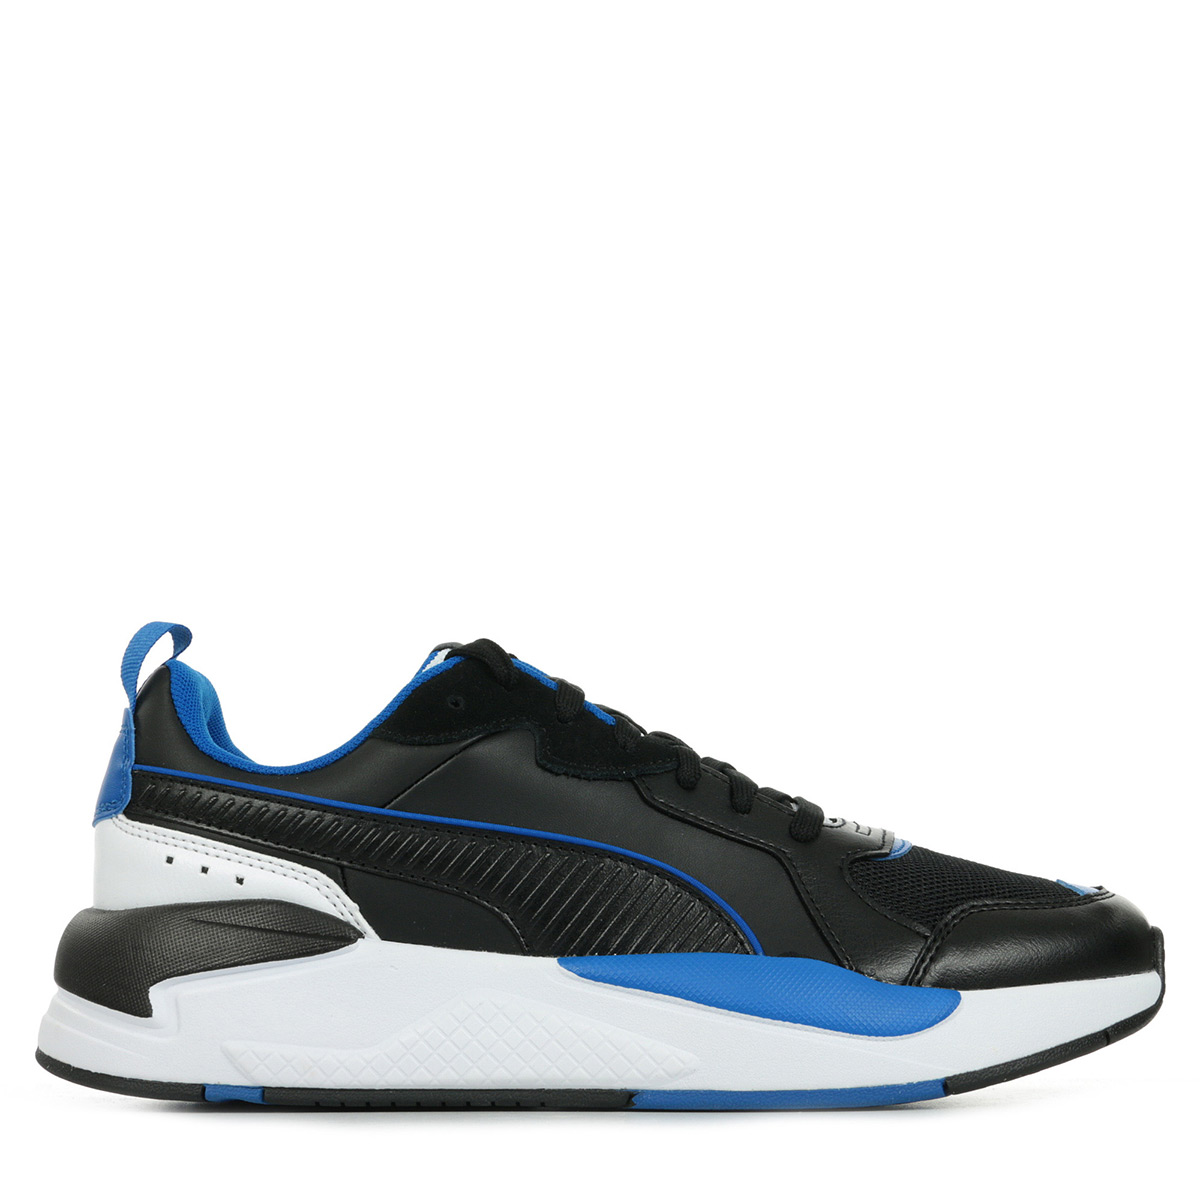 Puma X Ray Game 37284906, Baskets mode homme